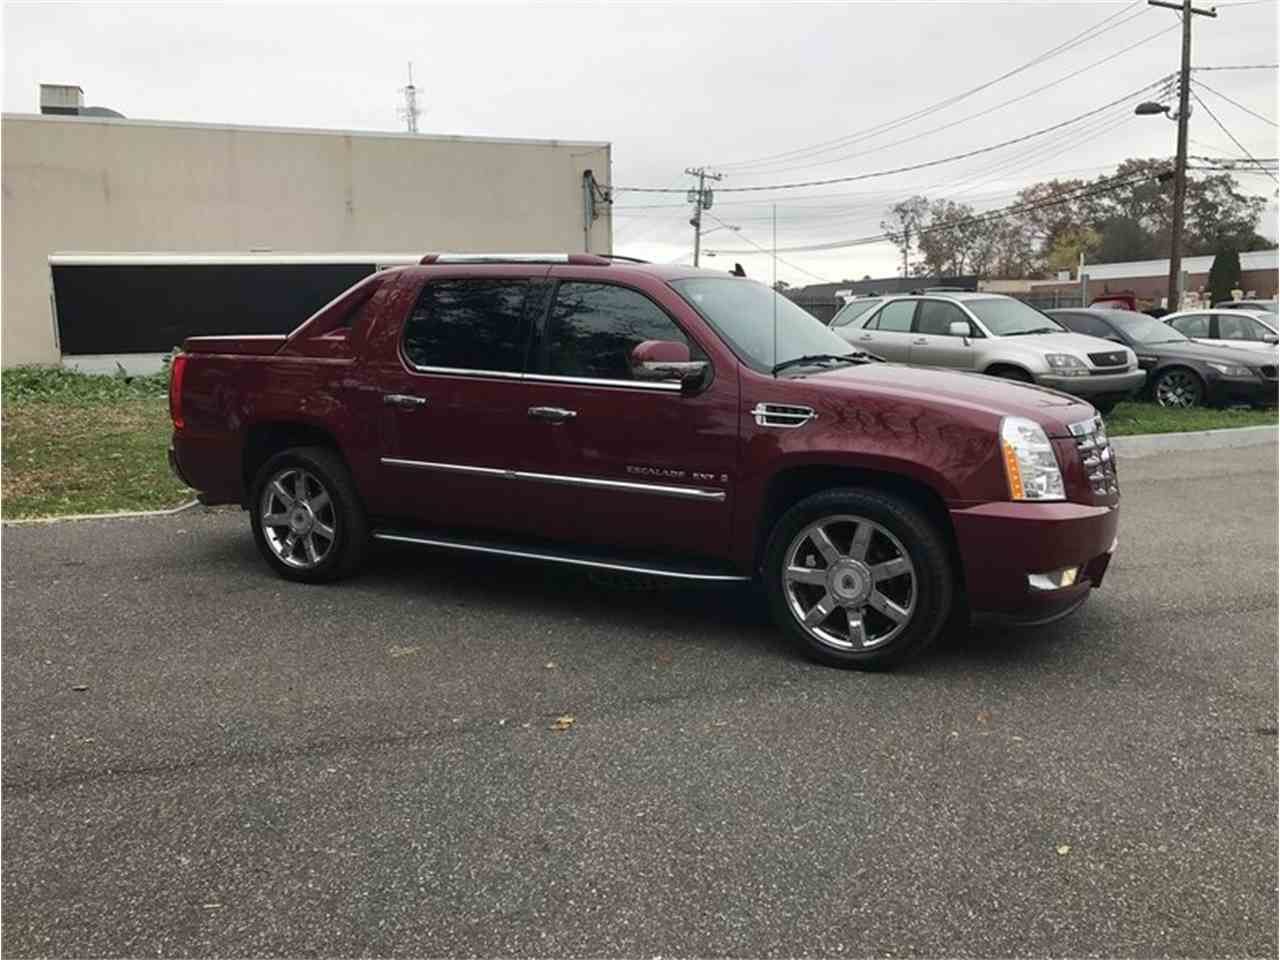 sale ext used cadillac carfax with escalade for photos